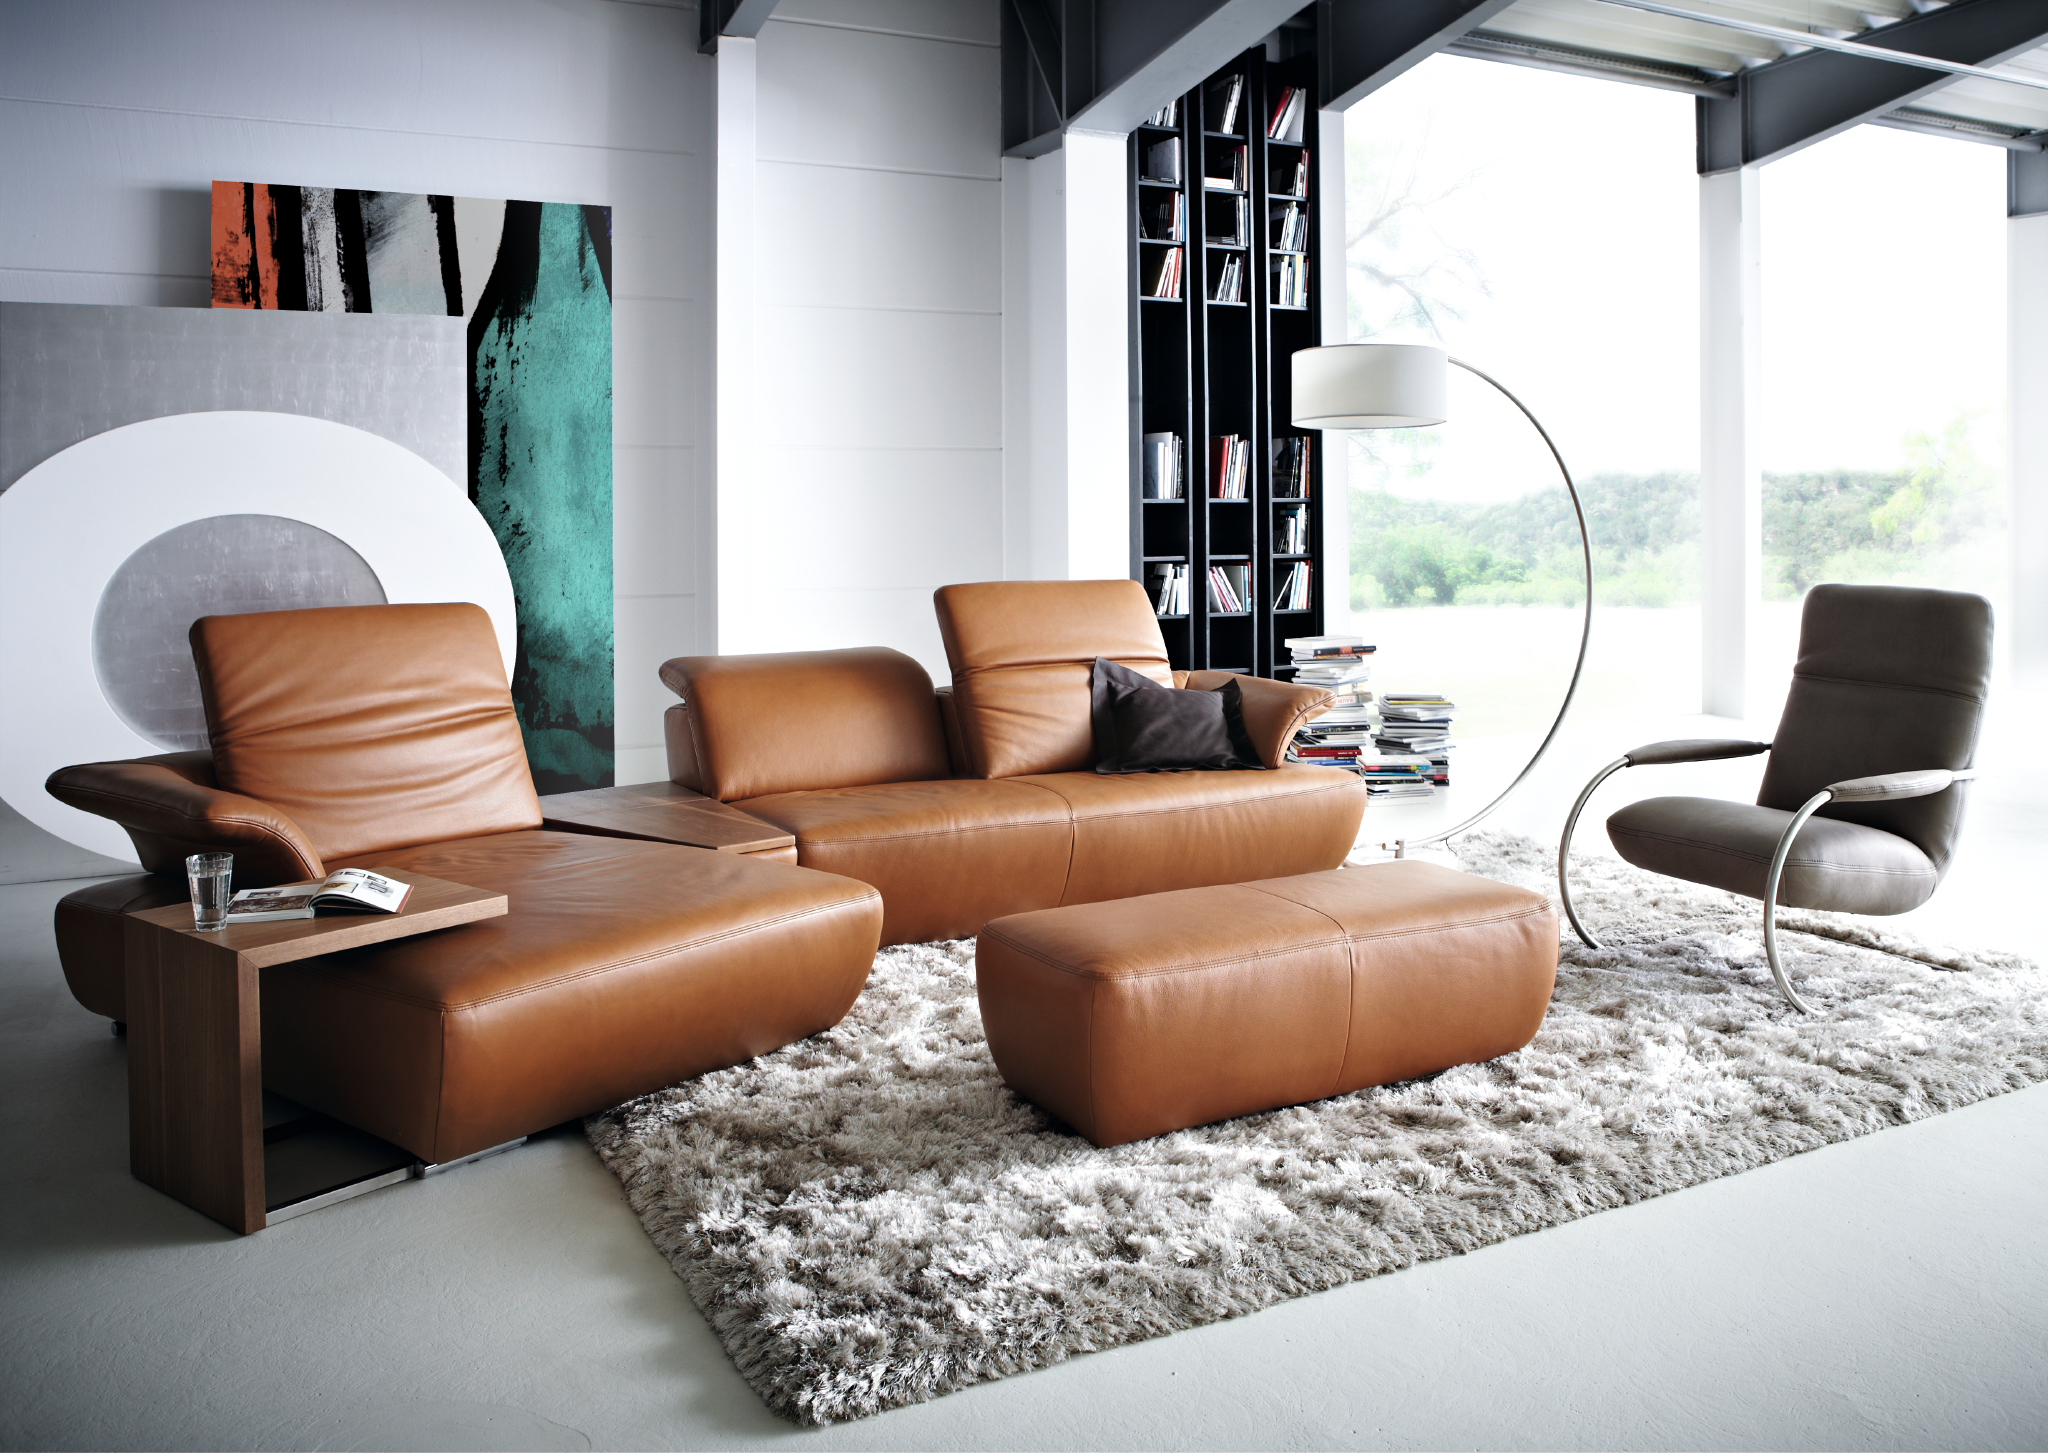 Best places to buy designer furniture from Singapore